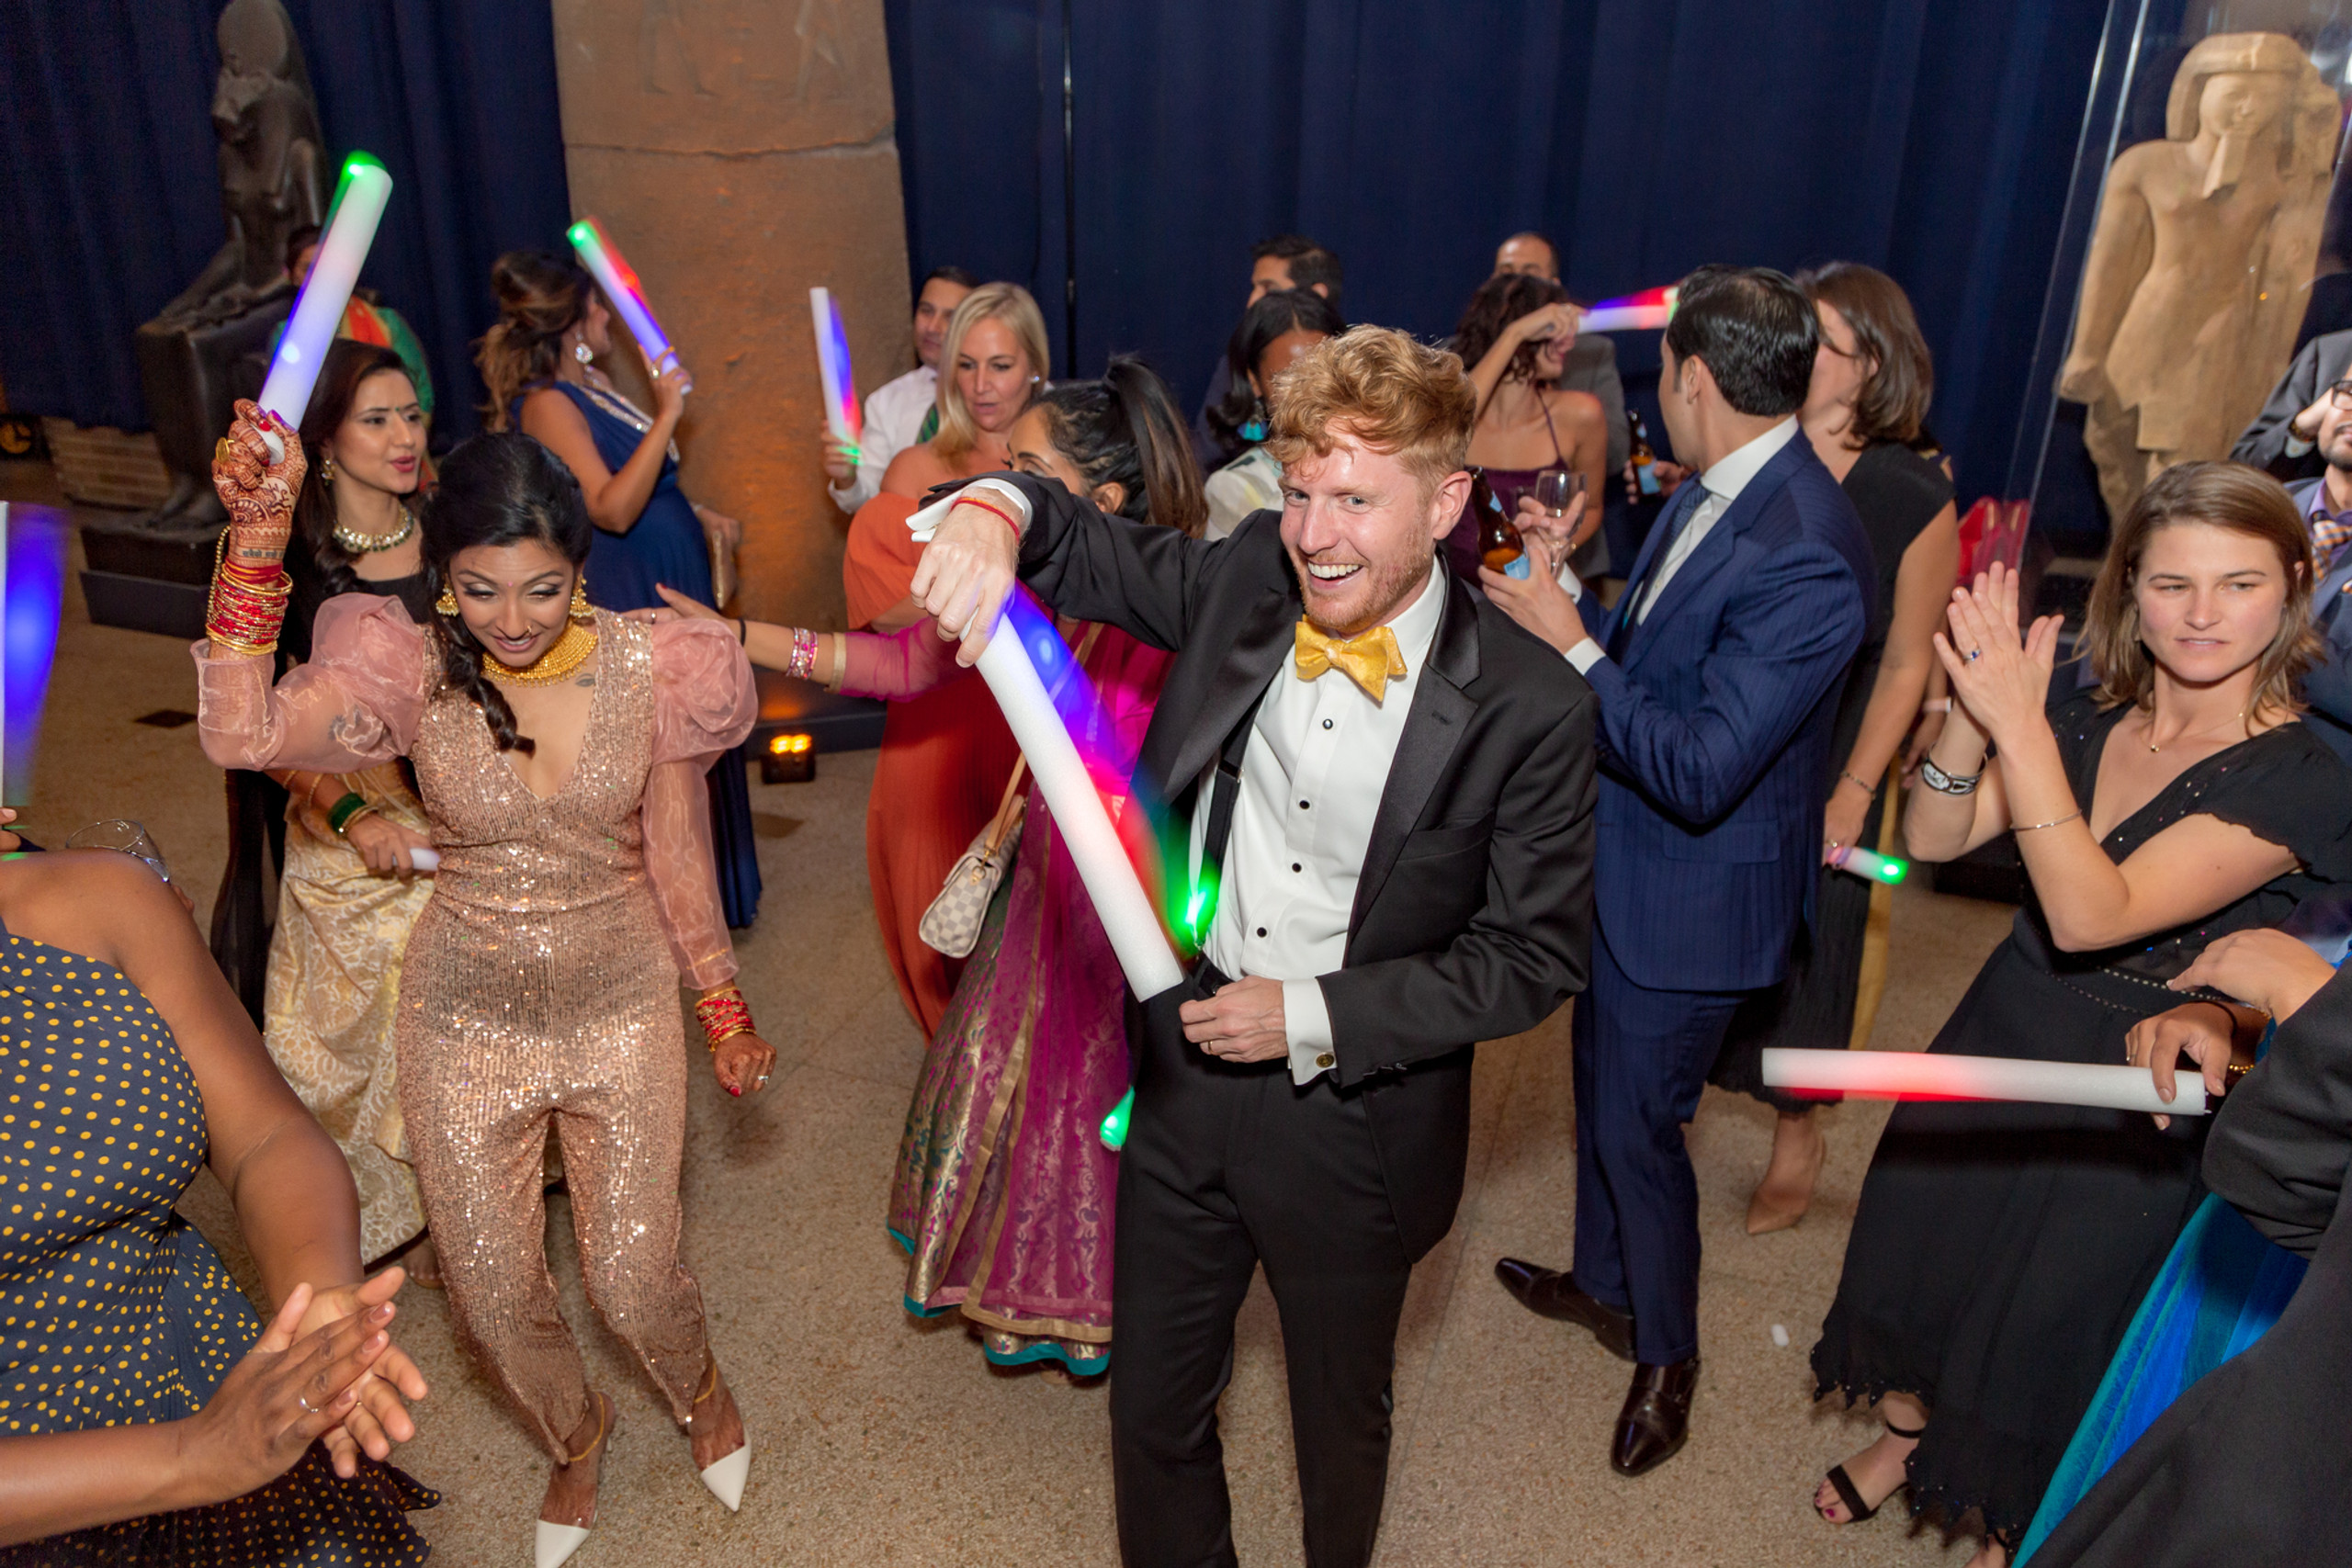 The bride and groom waving their glow sticks on the dance floor during the wedding reception at the Penn Museum in Philadelphia, Pennsylvania.